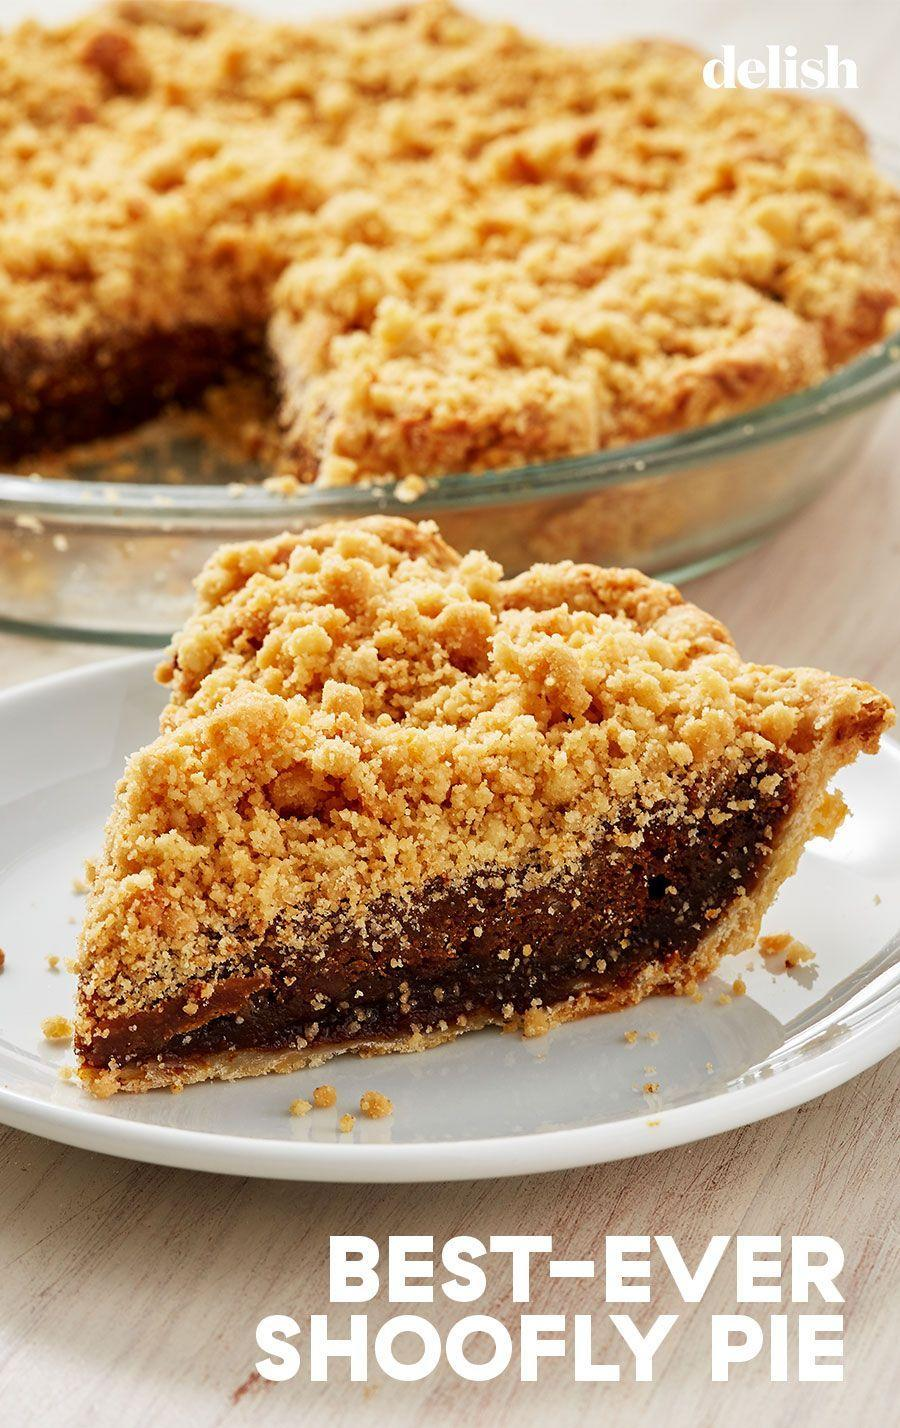 "<p>Dark and rich and full of spice. It's the best there is. </p><p>Get the recipe from <a href=""https://www.delish.com/cooking/recipe-ideas/a28903649/classic-shoofly-pie-recipe/"" rel=""nofollow noopener"" target=""_blank"" data-ylk=""slk:Delish"" class=""link rapid-noclick-resp"">Delish</a>. </p>"